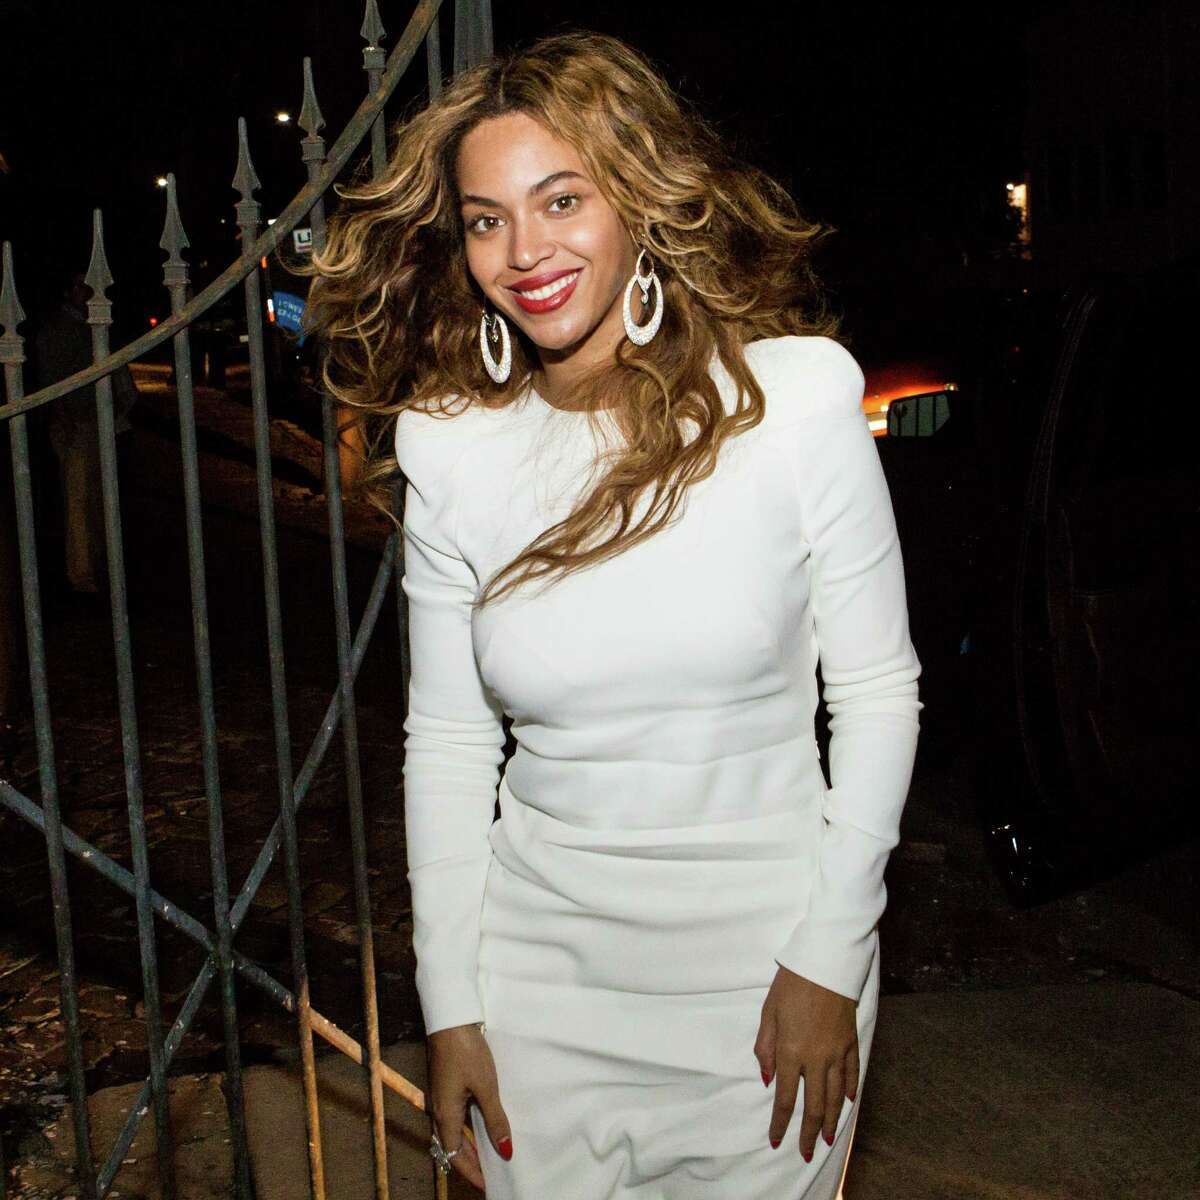 Musician Beyonce Knowles arrives at Felicity Street Methodist Church for musician Solange Knowles and music video director Alan Ferguson's rehearsal dinner on November 15, 2014 in New Orleans, Louisiana. (Photo by Josh Brasted/WireImage)AP story: Solange Knowles weds video director